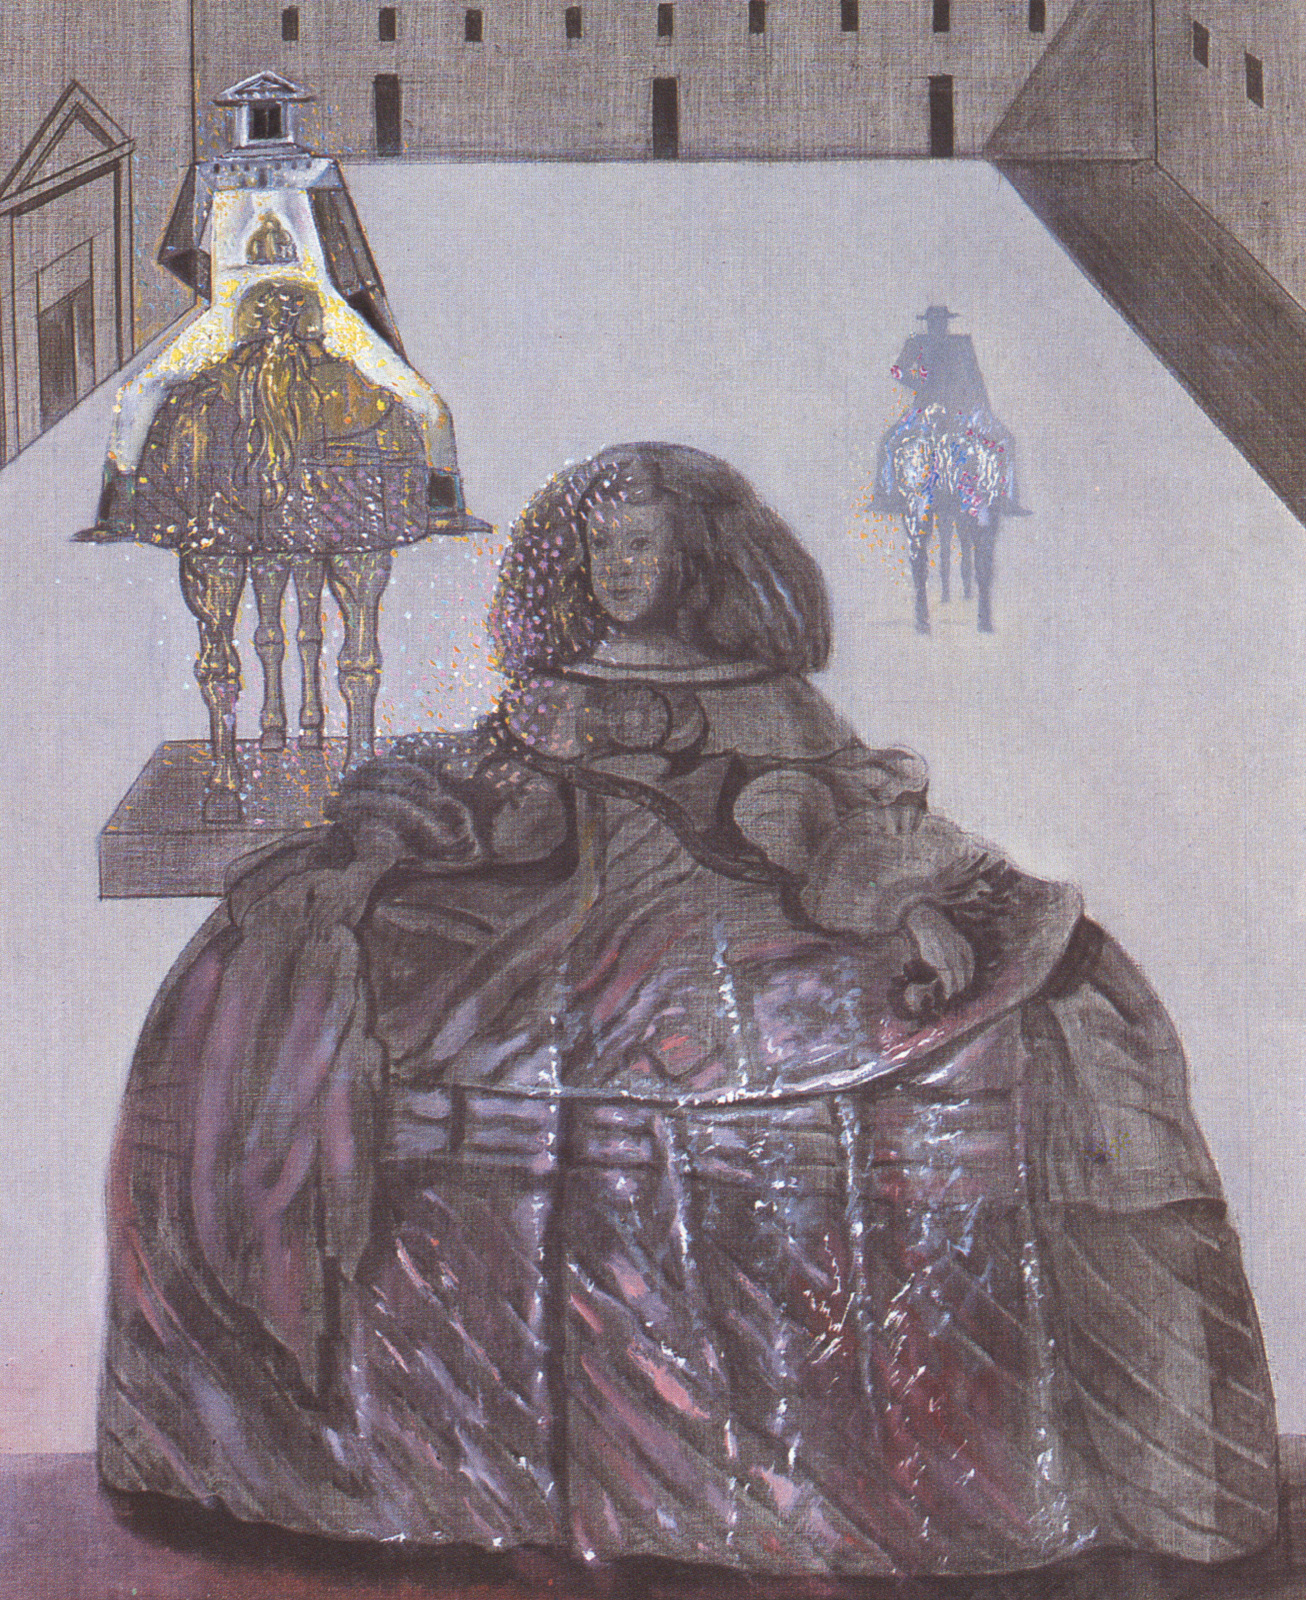 The Infanta Margarita of Velazquez Appearing in the Silhouette of Horsemen in the Courtyard of the Escorial 1982